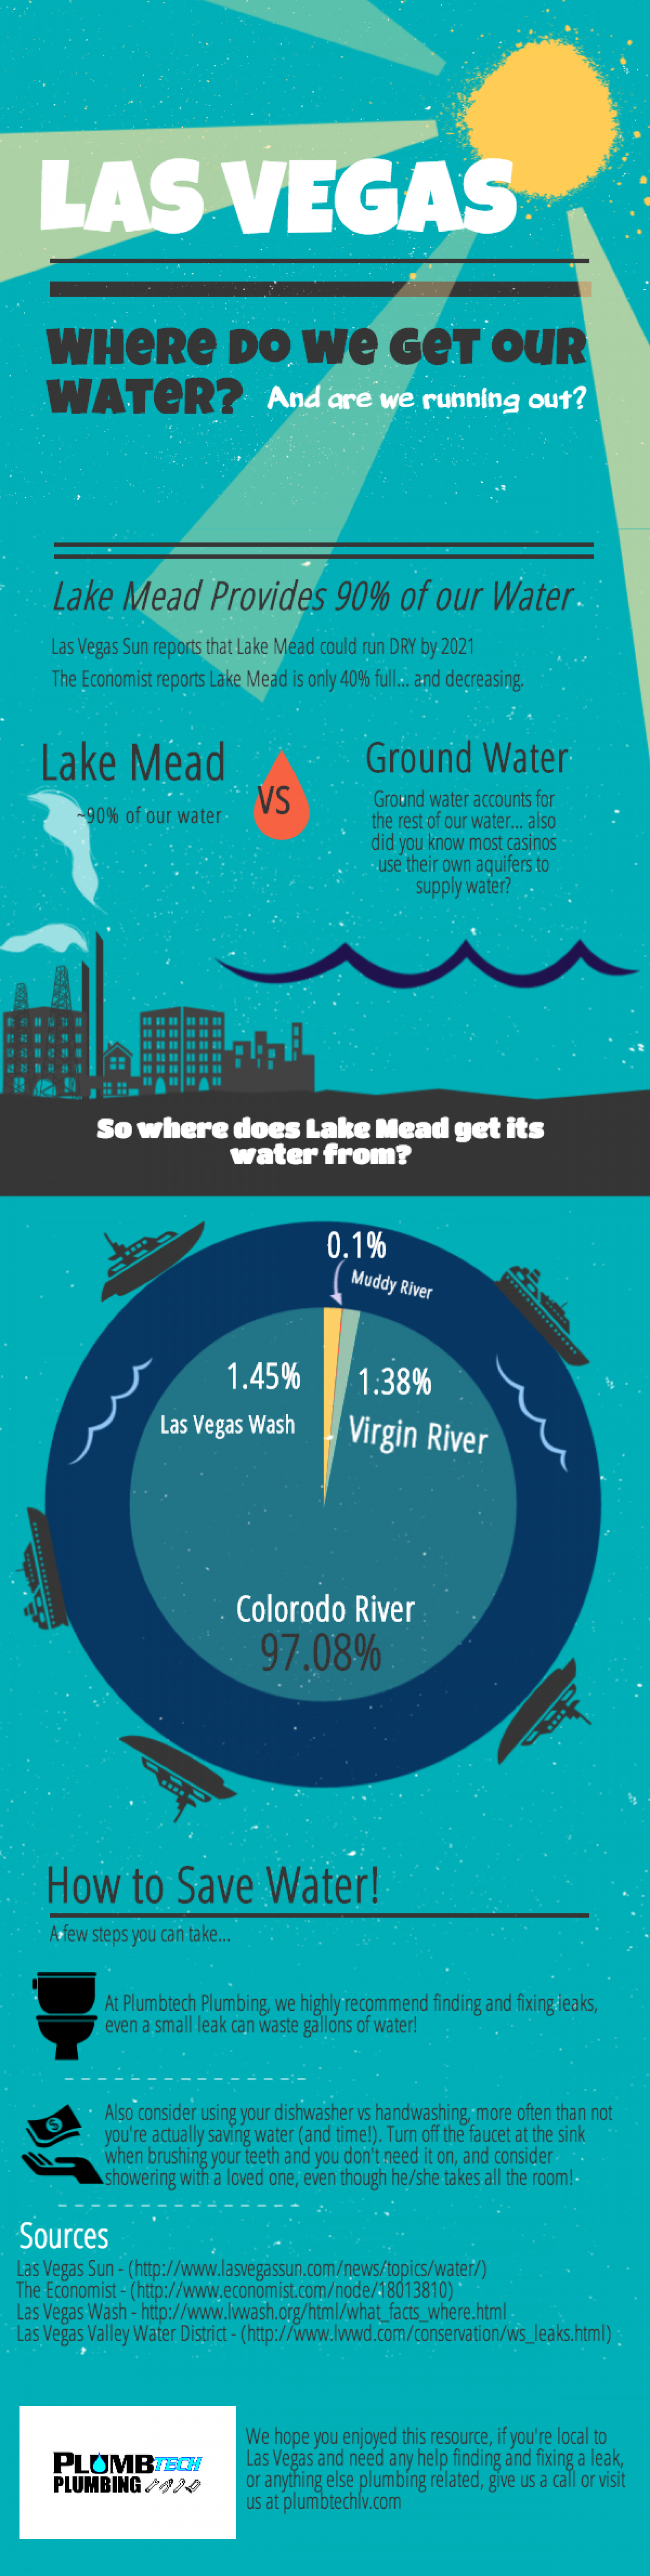 Where Does Las Vegas Get Its Water? Infographic